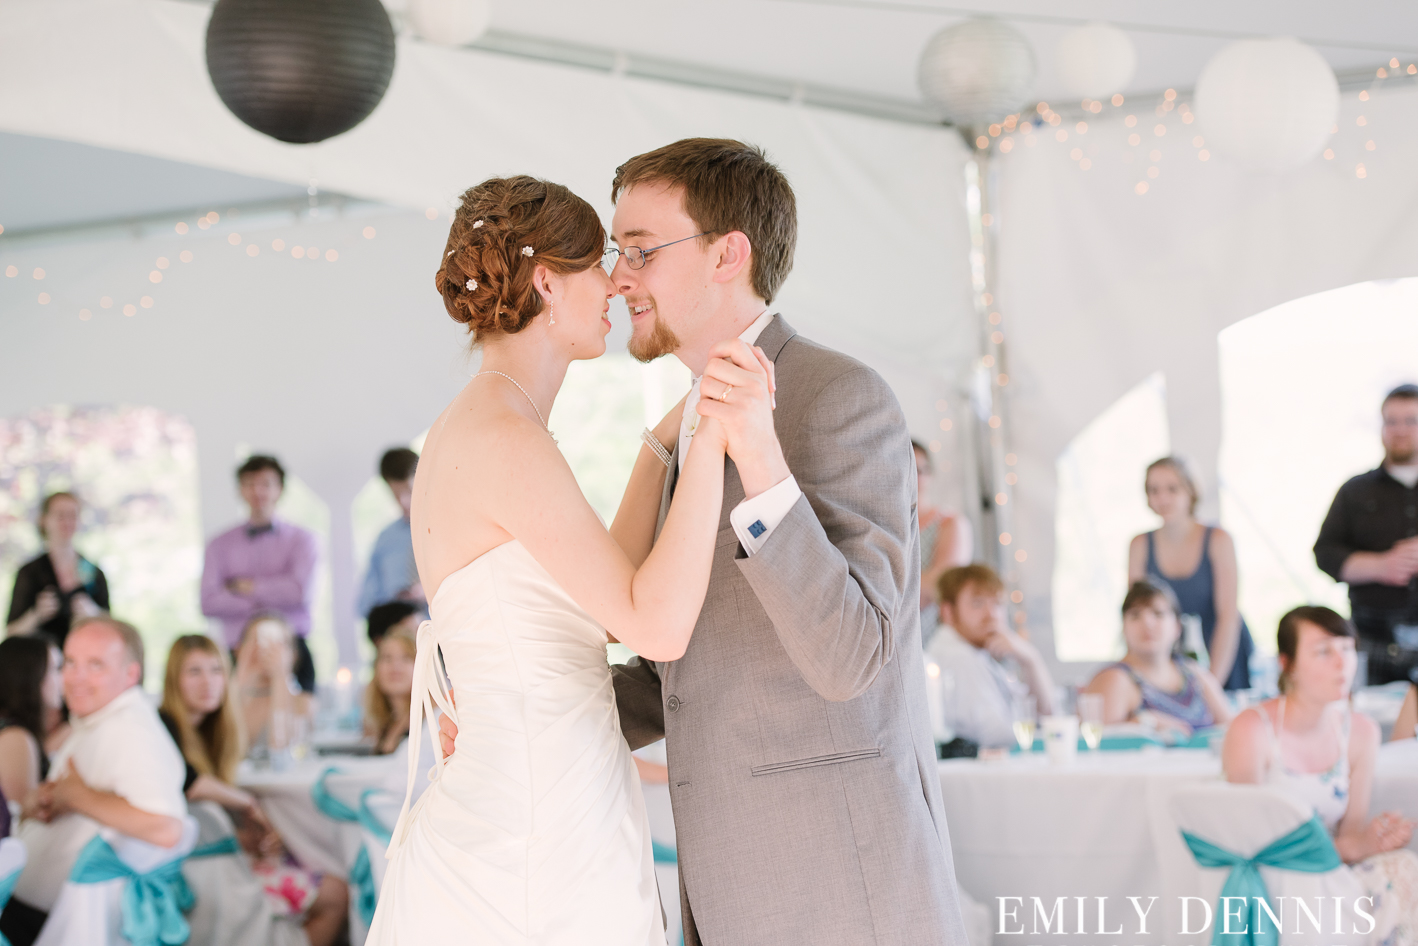 EMILY_DENNIS_PHOTOGRAPHY-106